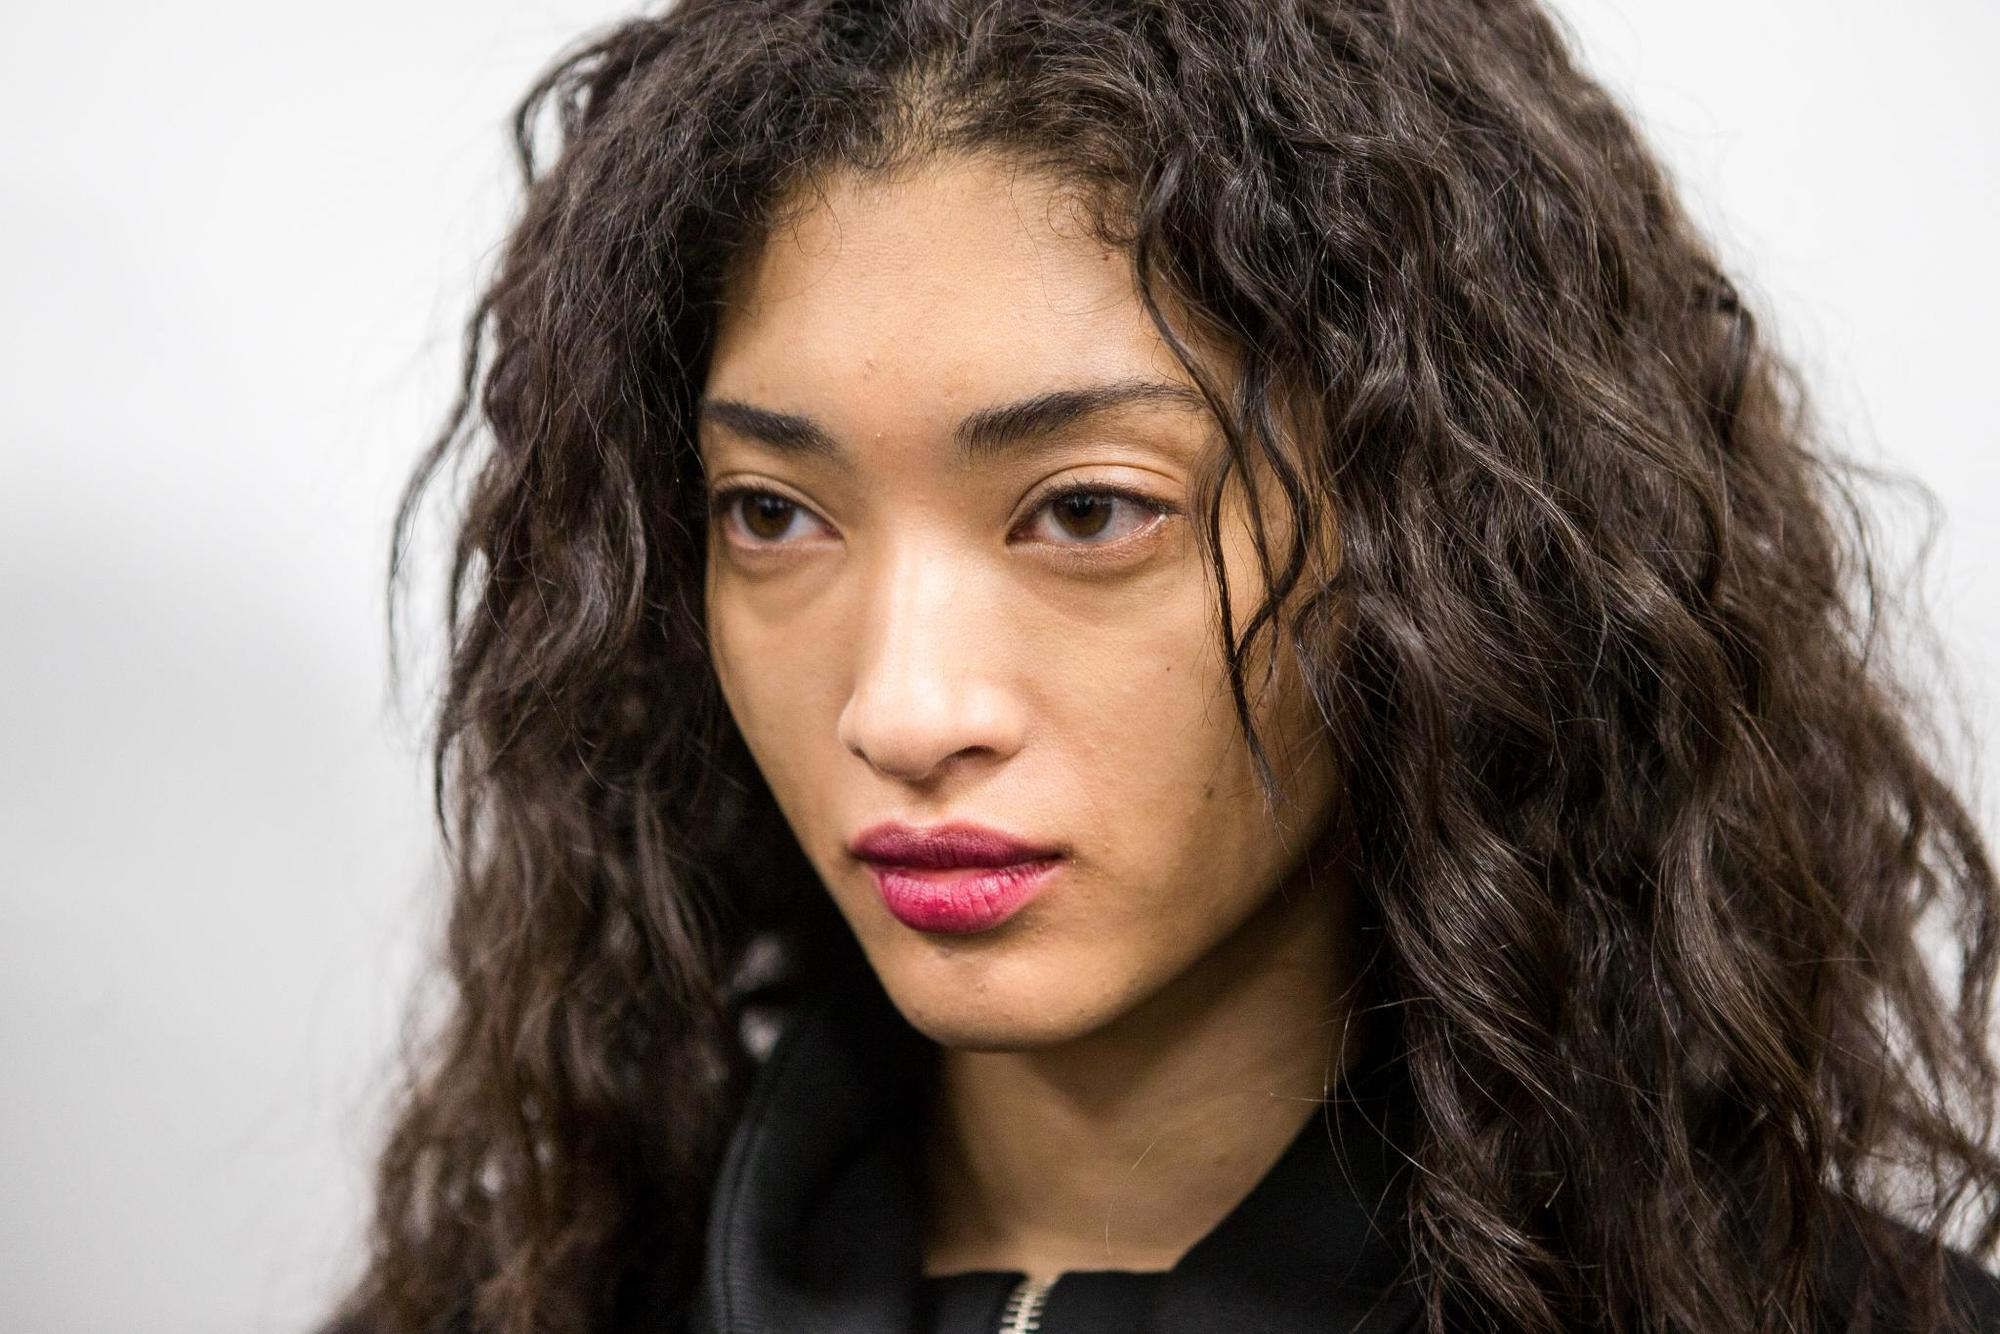 natural hair textures: shot of model with loose curly hair